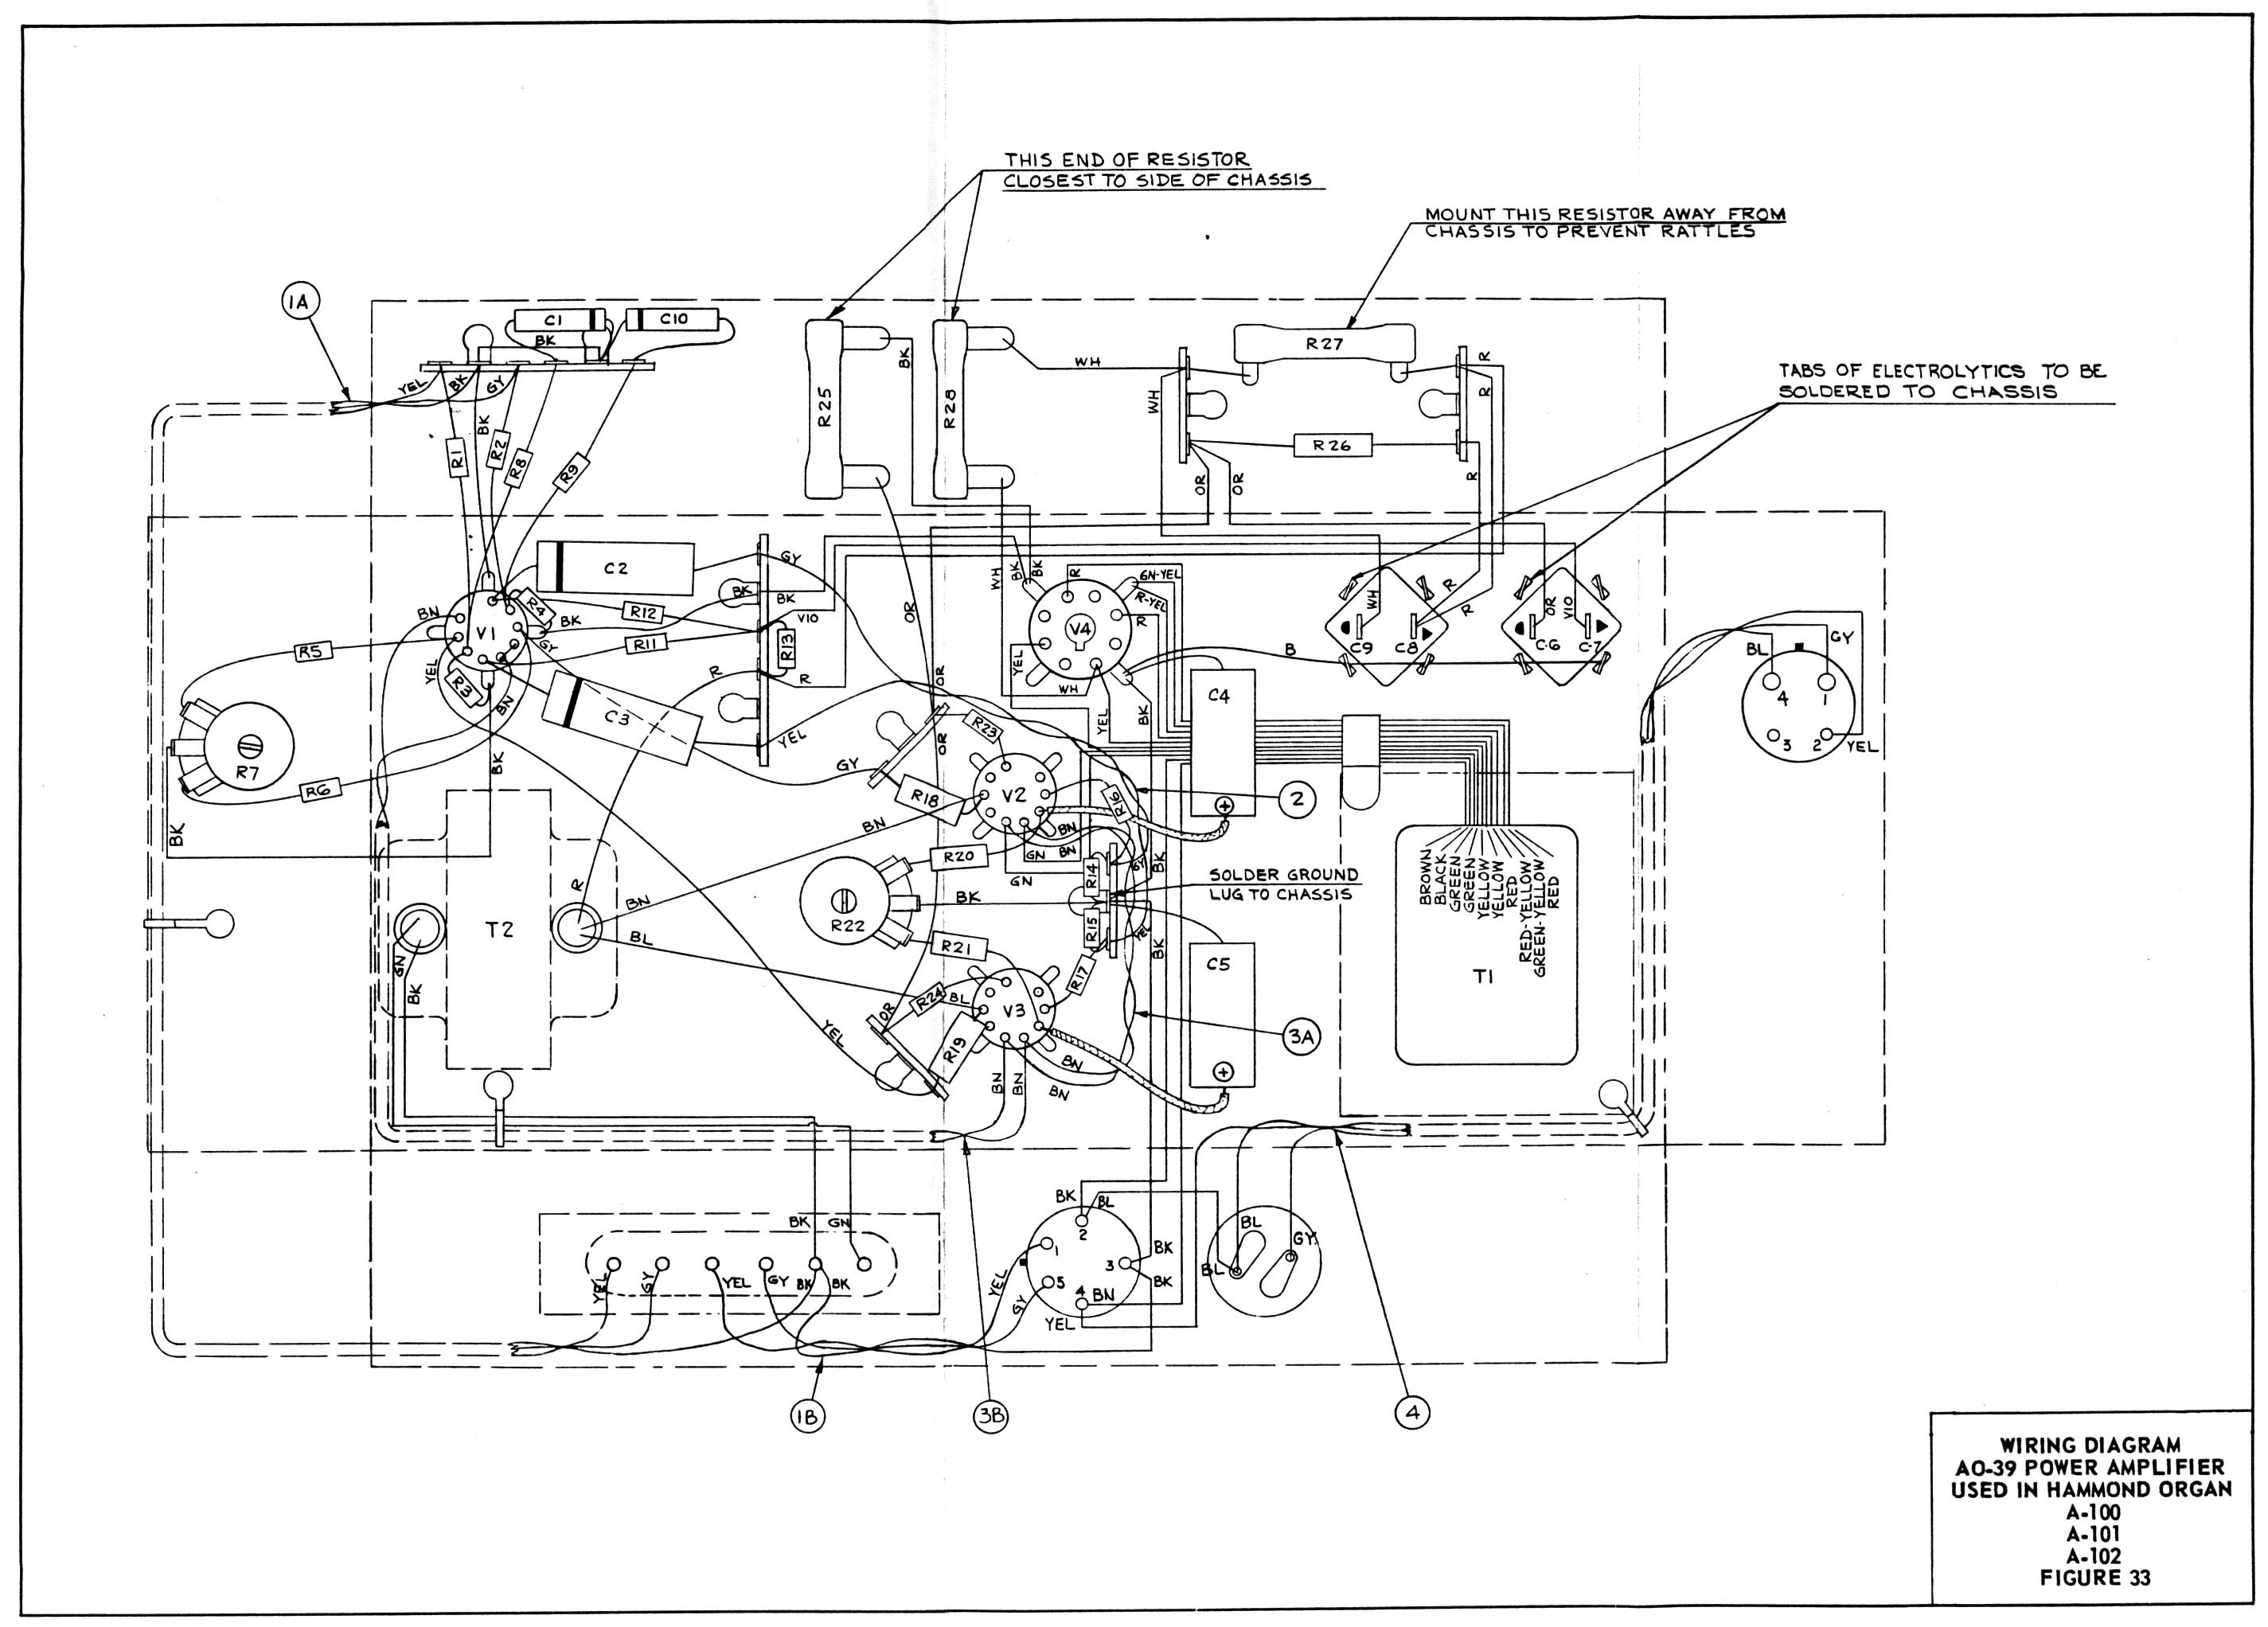 Pole Mounted Controller Wiring Diagram Libraries Ac Unit Auto Electrical Diagrampole